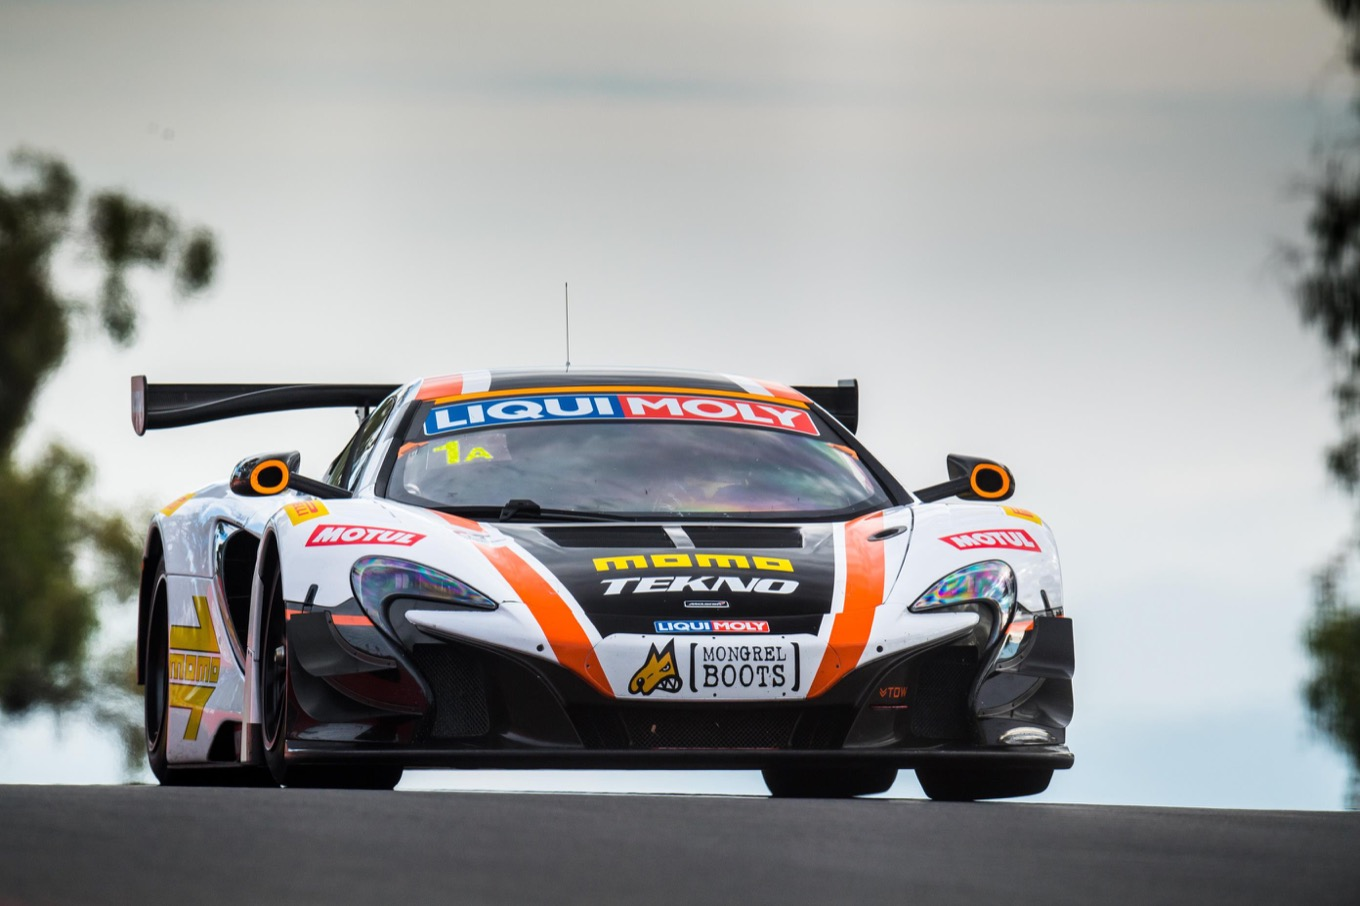 Bell s strong opening drive in the early hours after the car rejoined the race set up a 10 hour fightback which culminated in the 1 650s gt3 climbing as